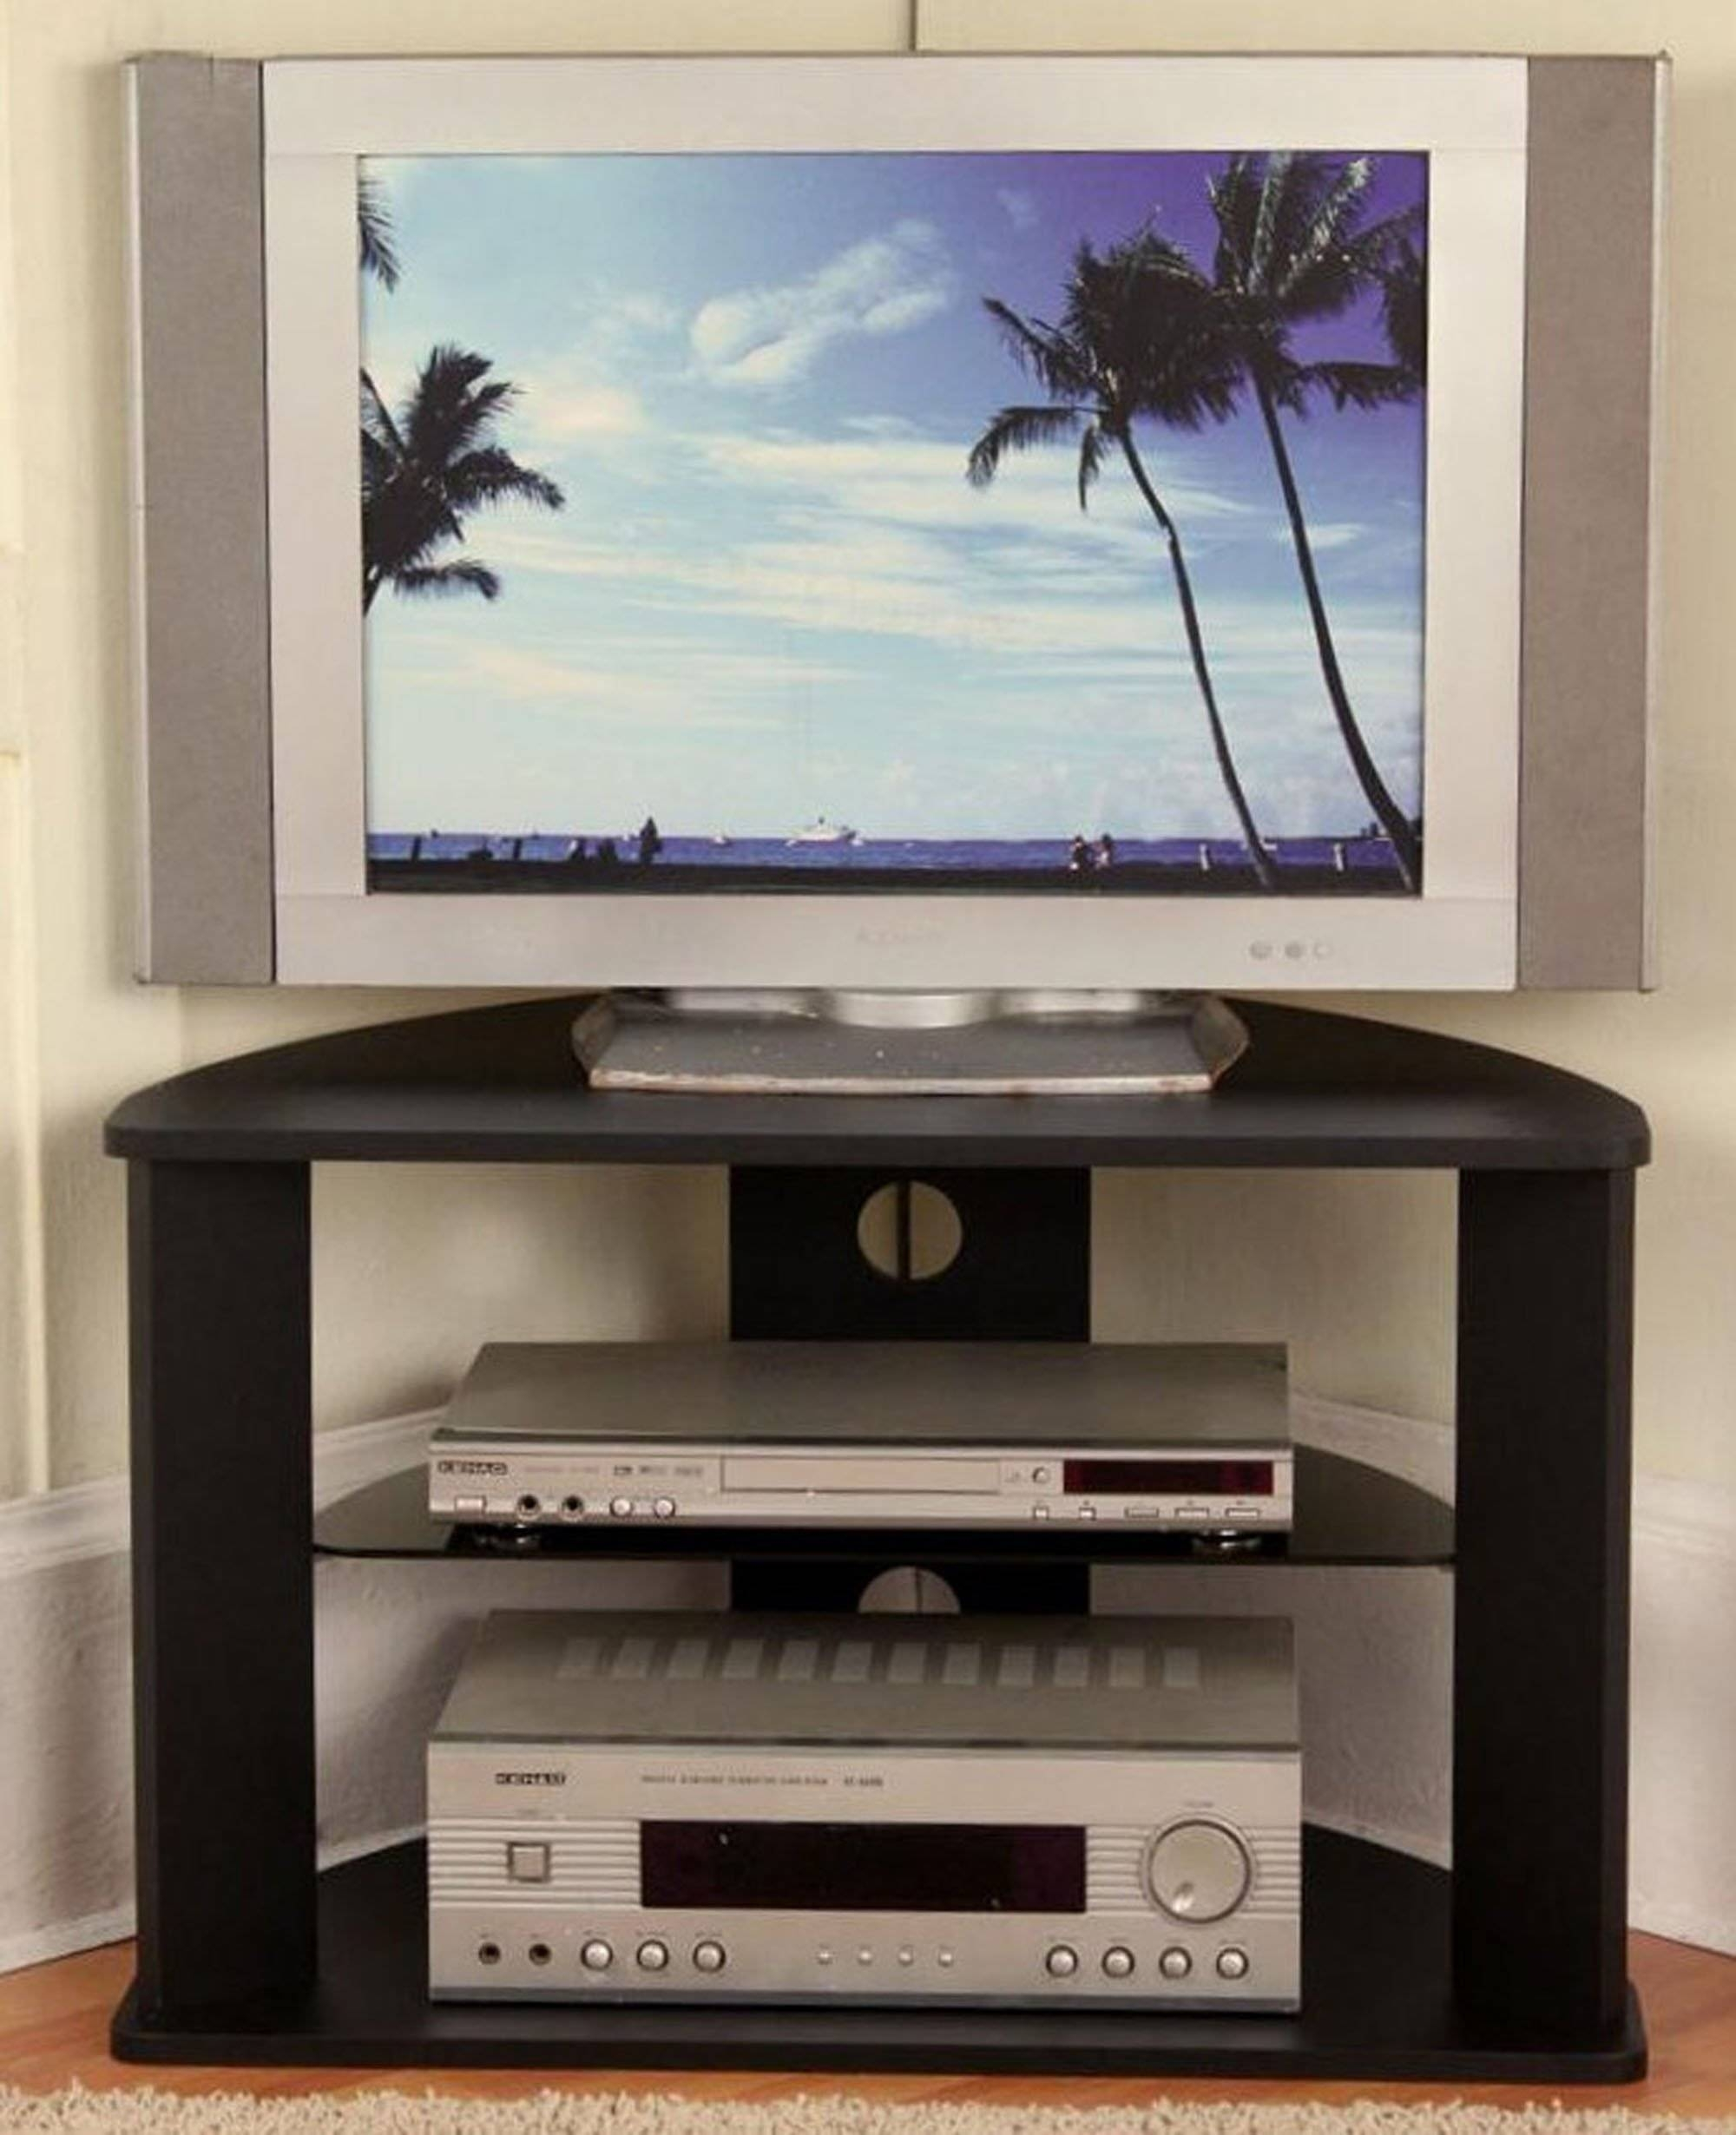 Tv Stand With Rounded Corners - Round Designs intended for Tv Stands With Rounded Corners (Image 11 of 15)